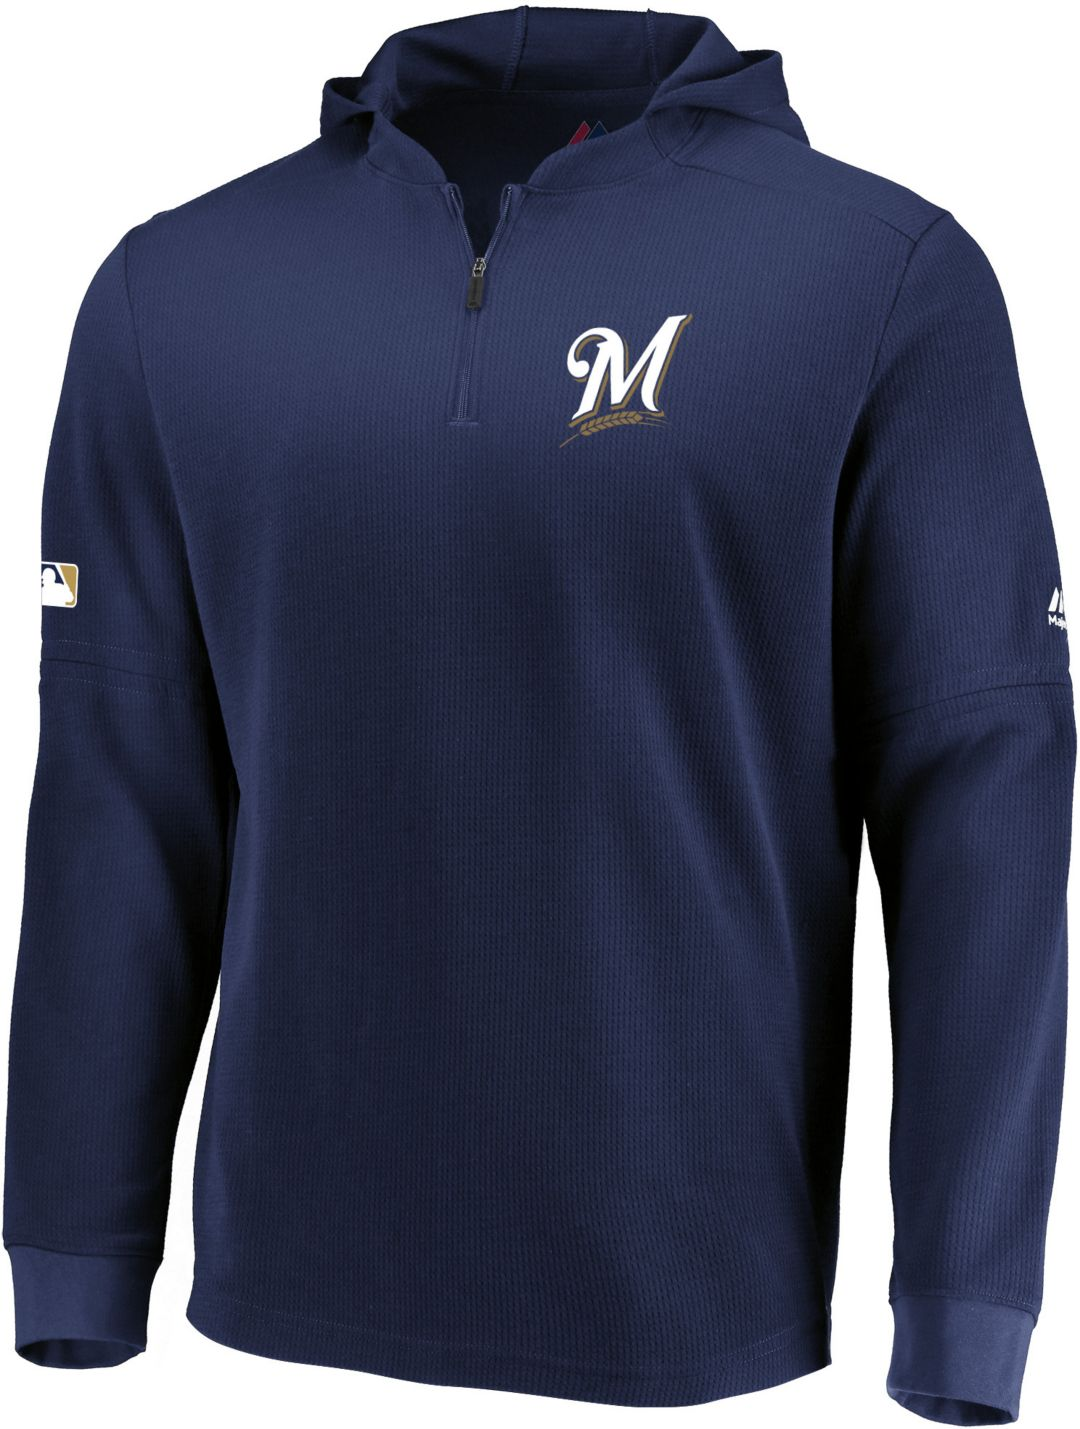 reputable site 58fe9 329b7 Majestic Men's Milwaukee Brewers Authentic Collection Batting Practice  Waffle Hooded Pullover